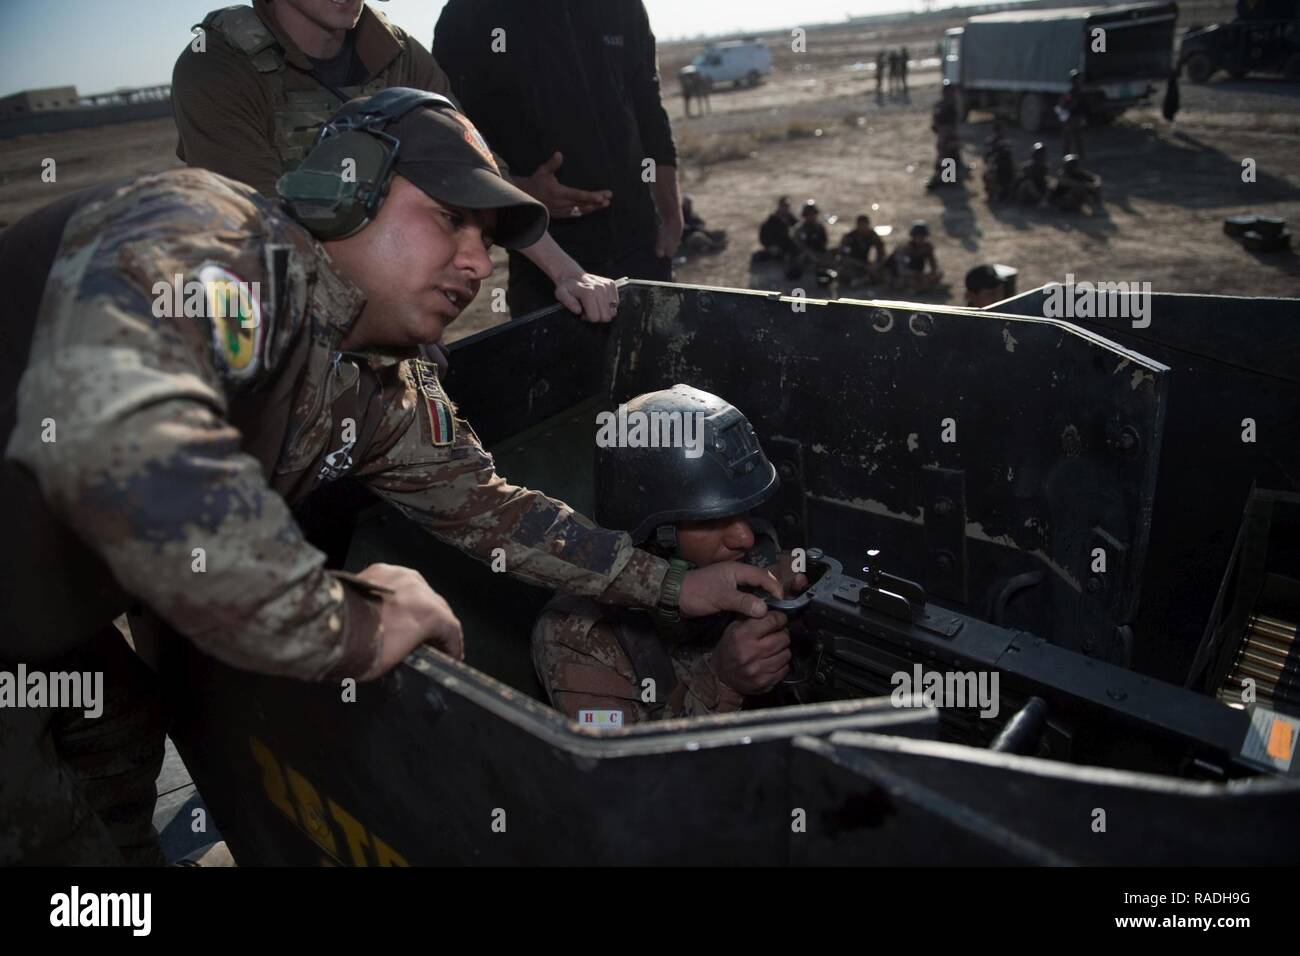 An Iraqi Counter-Terrorism Service instructor corrects a trainee operating the .50 caliber machine gun during live weapons training near Baghdad, Iraq, Jan. 31, 2017. ICTS is Iraq's elite counter-terrorism force and has proven to be an effective fighting force against ISIL. This training is part of the overall Combined Joint Task Force – Operation Inherent Resolve building partner capacity mission to increase the capacity of partnered forces fighting ISIL. CJTF-OIR is the global Coalition to defeat ISIL in Iraq and Syria. - Stock Image